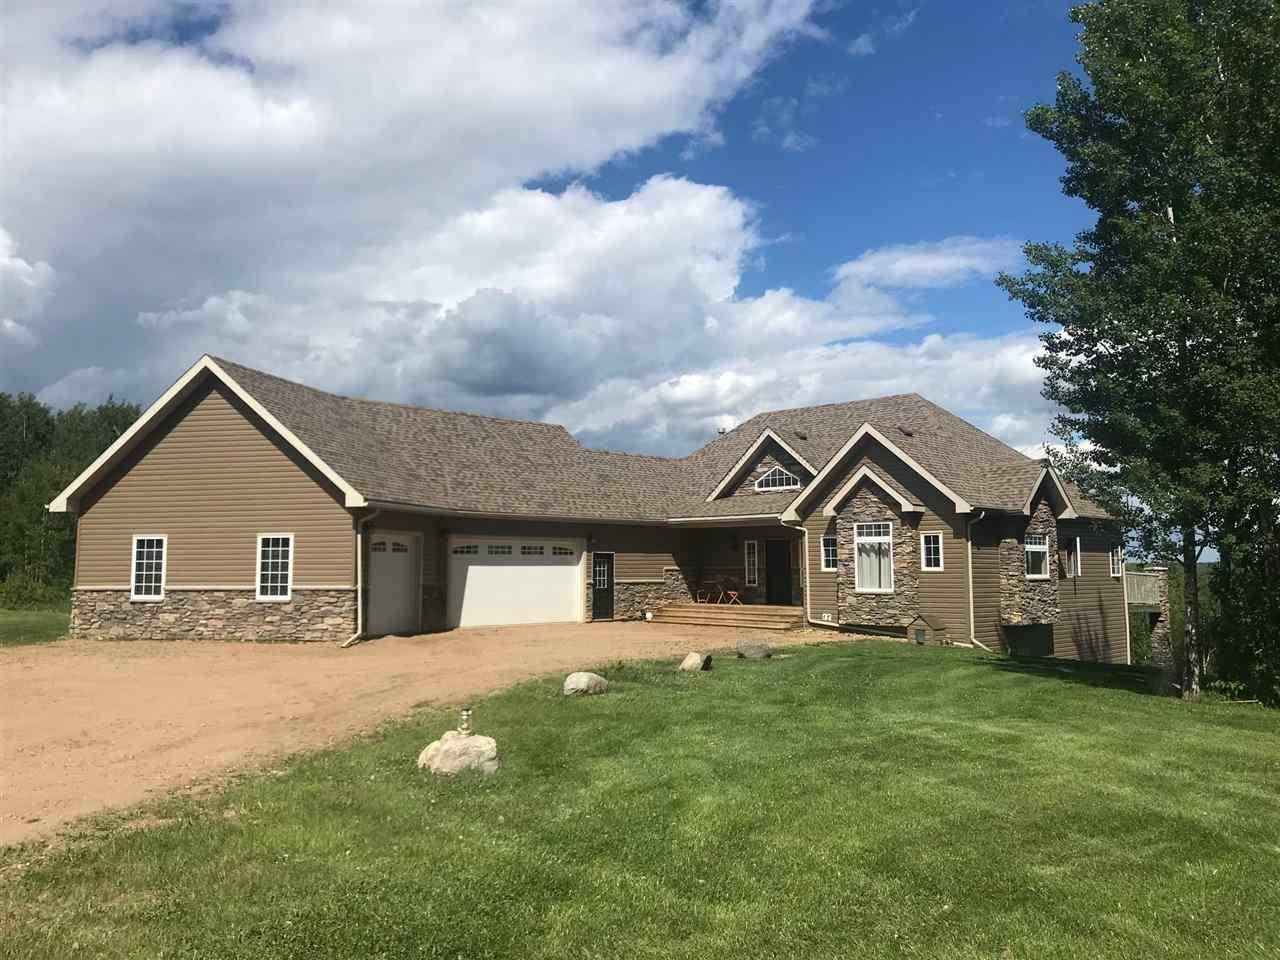 House for sale at 631023 Rr  Unit 235.5 Rural Athabasca County Alberta - MLS: E4161566